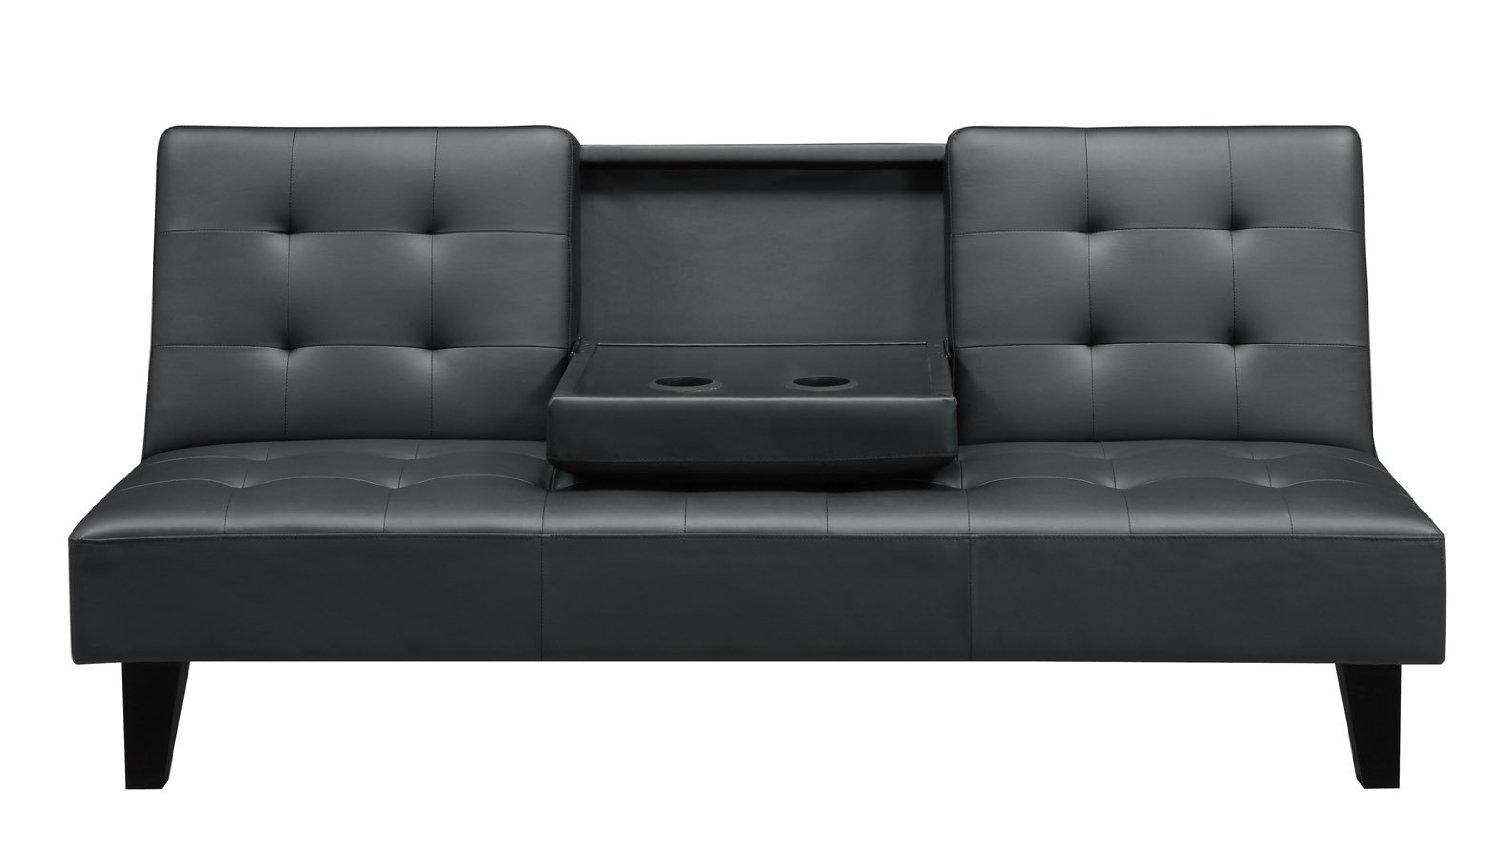 Living Room : Appealing Sharp Black Leather Sofa Bed Having Sturdy Pertaining To Chintz Sofa Beds (Image 10 of 20)